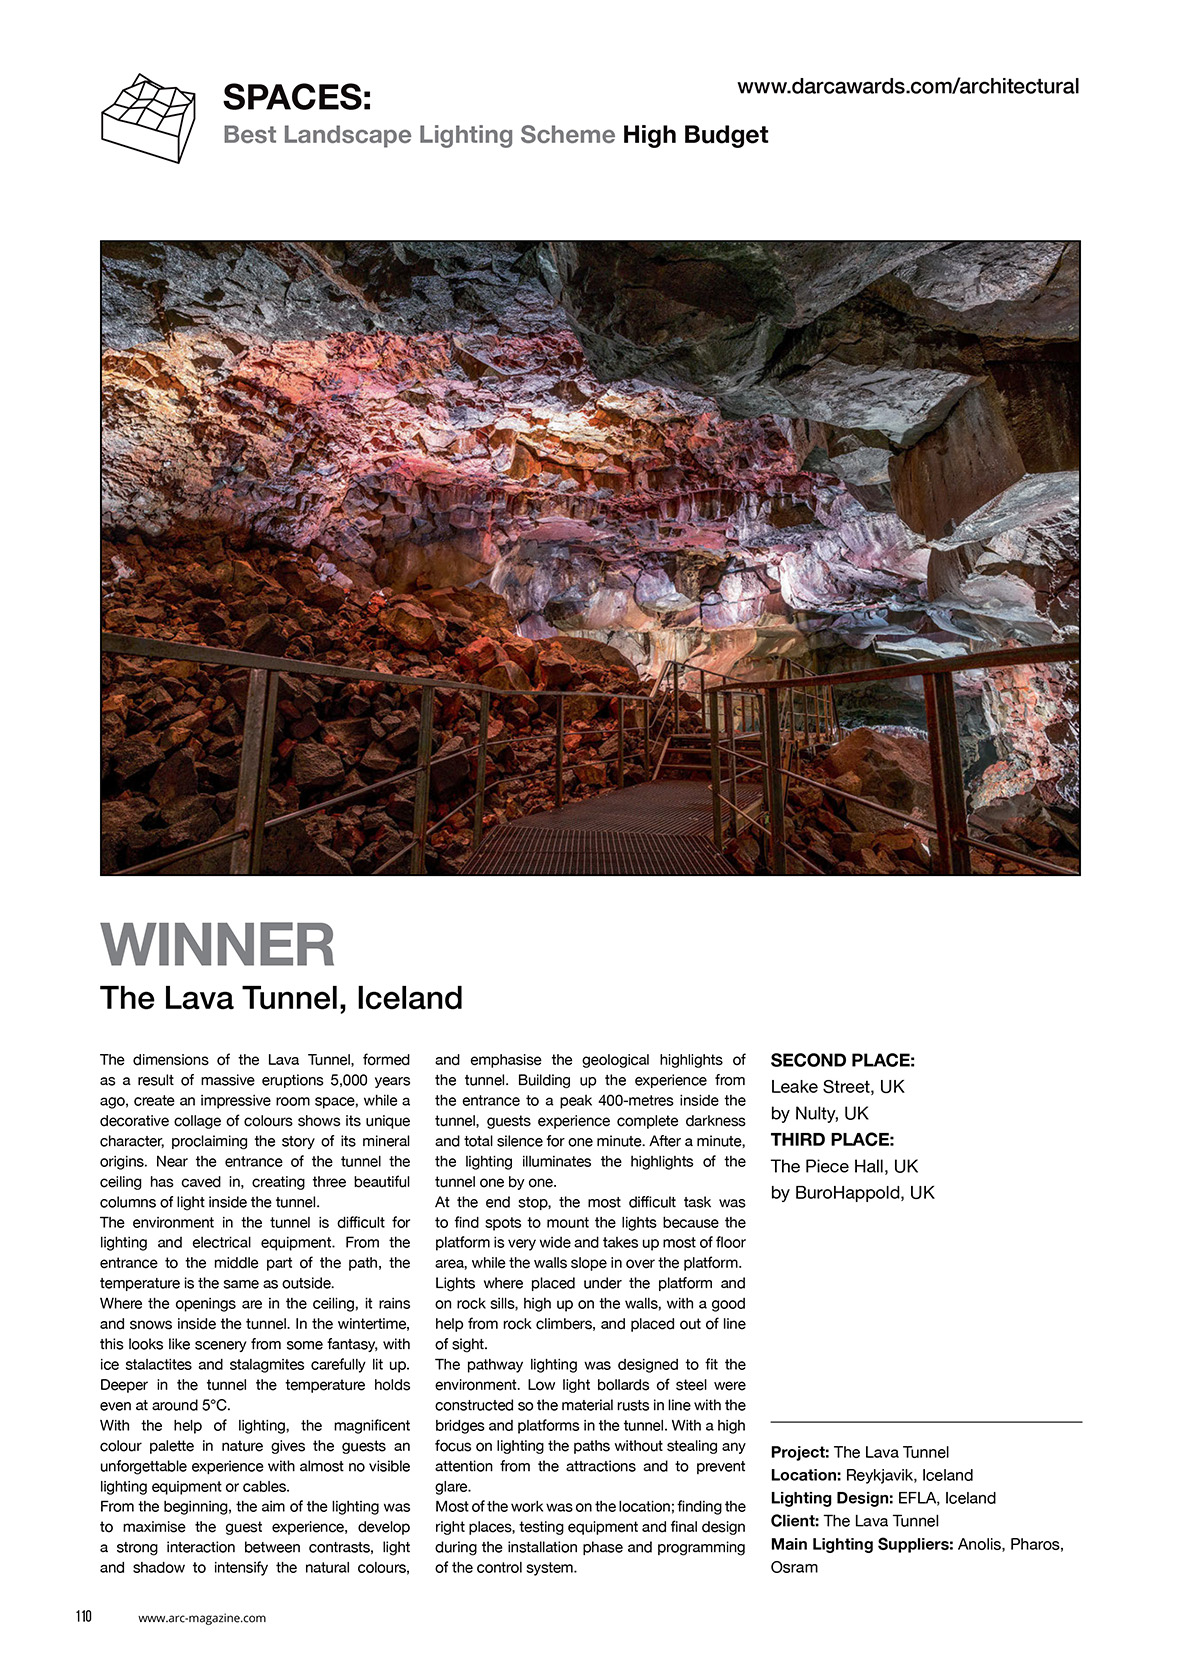 arc magazine_107_Lava Tunnel article_pp66-74 9w.jpg